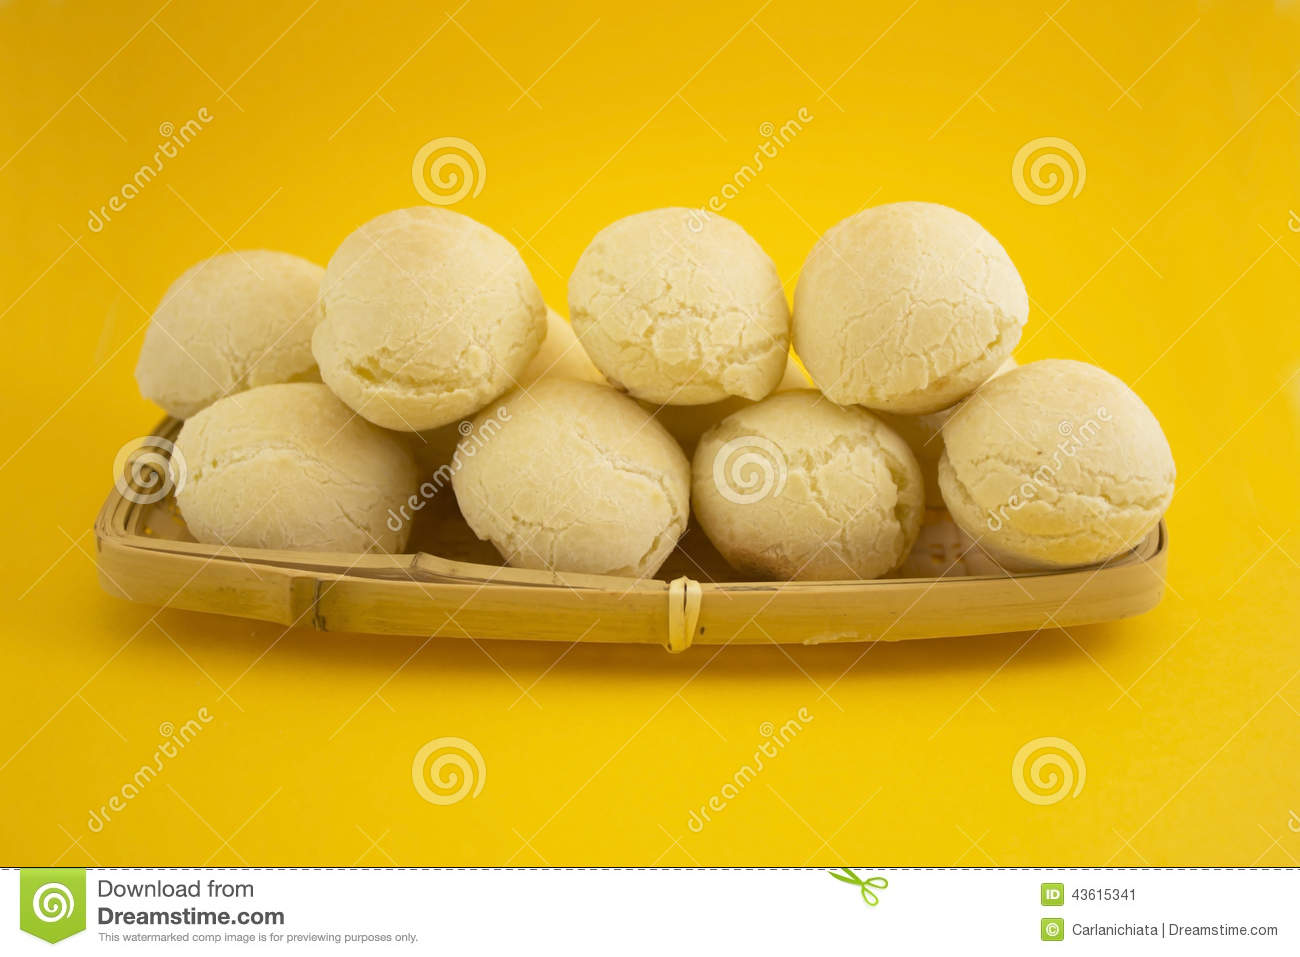 Cheese Buns Stock Photo - Image: 43615341